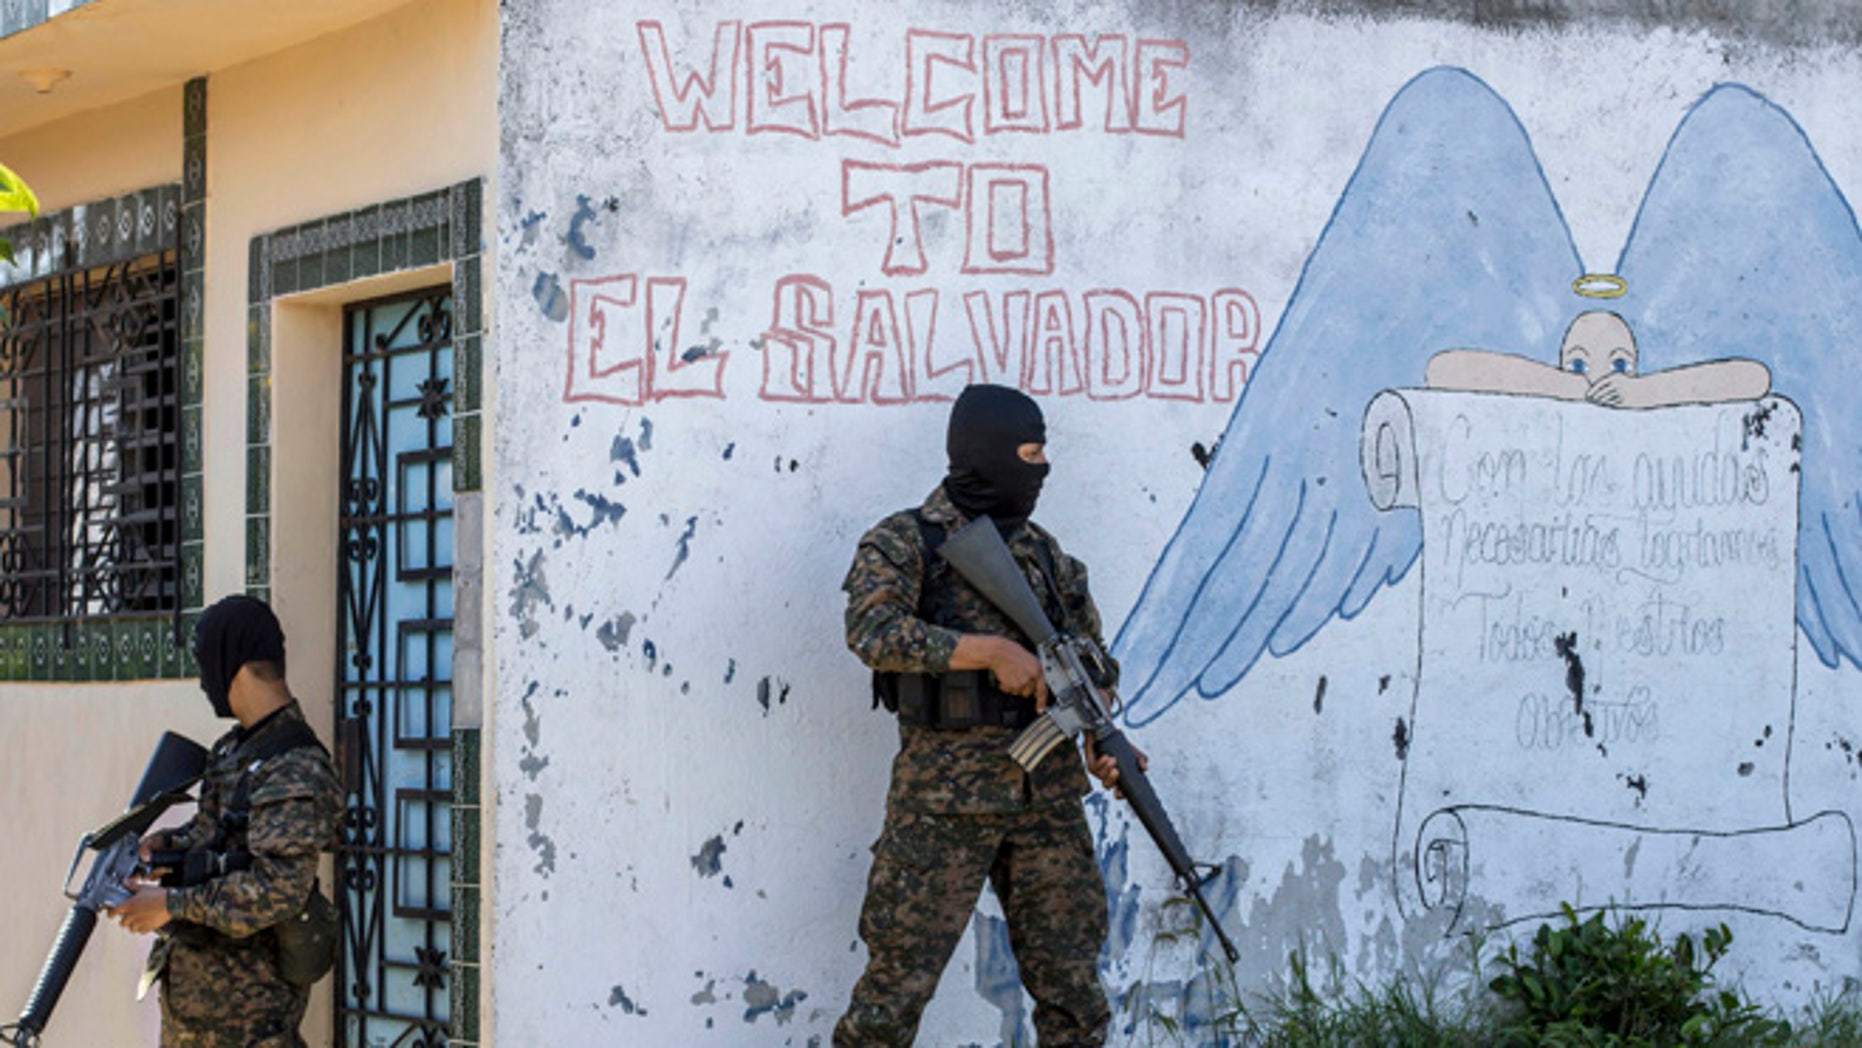 FILE - In this Aug. 31, 2015 file photo, soldiers guard a corner in a gang-controlled neighborhood in Ilopango, El Salvador. A video broadcast by local media on Saturday, March 26, 2016, purportedly made by the countryâs main street gangs, is offering an end to killings, and asks the government not to continue an anti-gang offensive. Officials said they would not negotiate with the gangs. (AP Photo/Salvador Melendez, File)